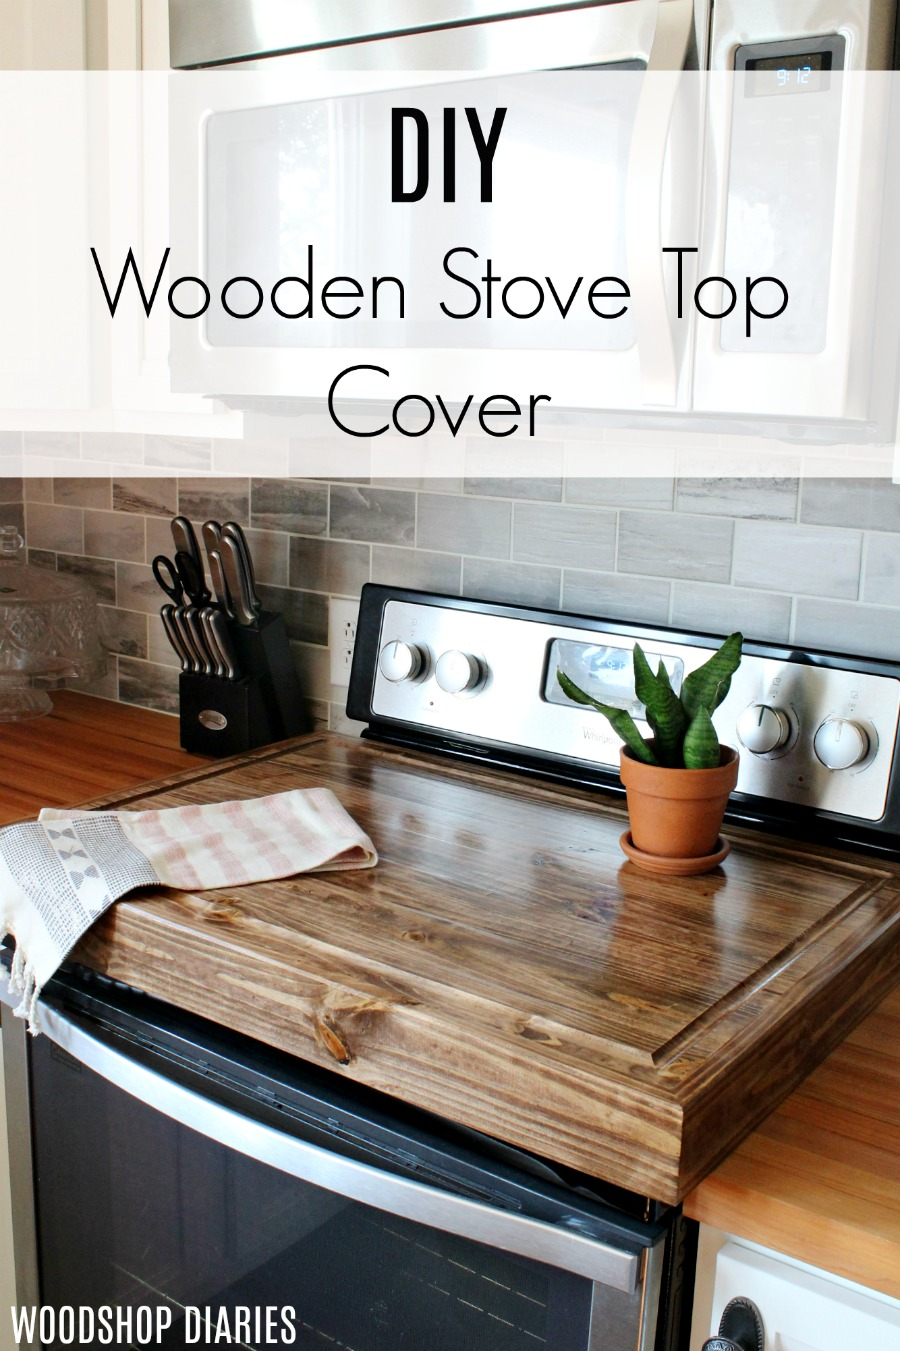 How to maximize your counter space by building a DIY wooden stove top cover